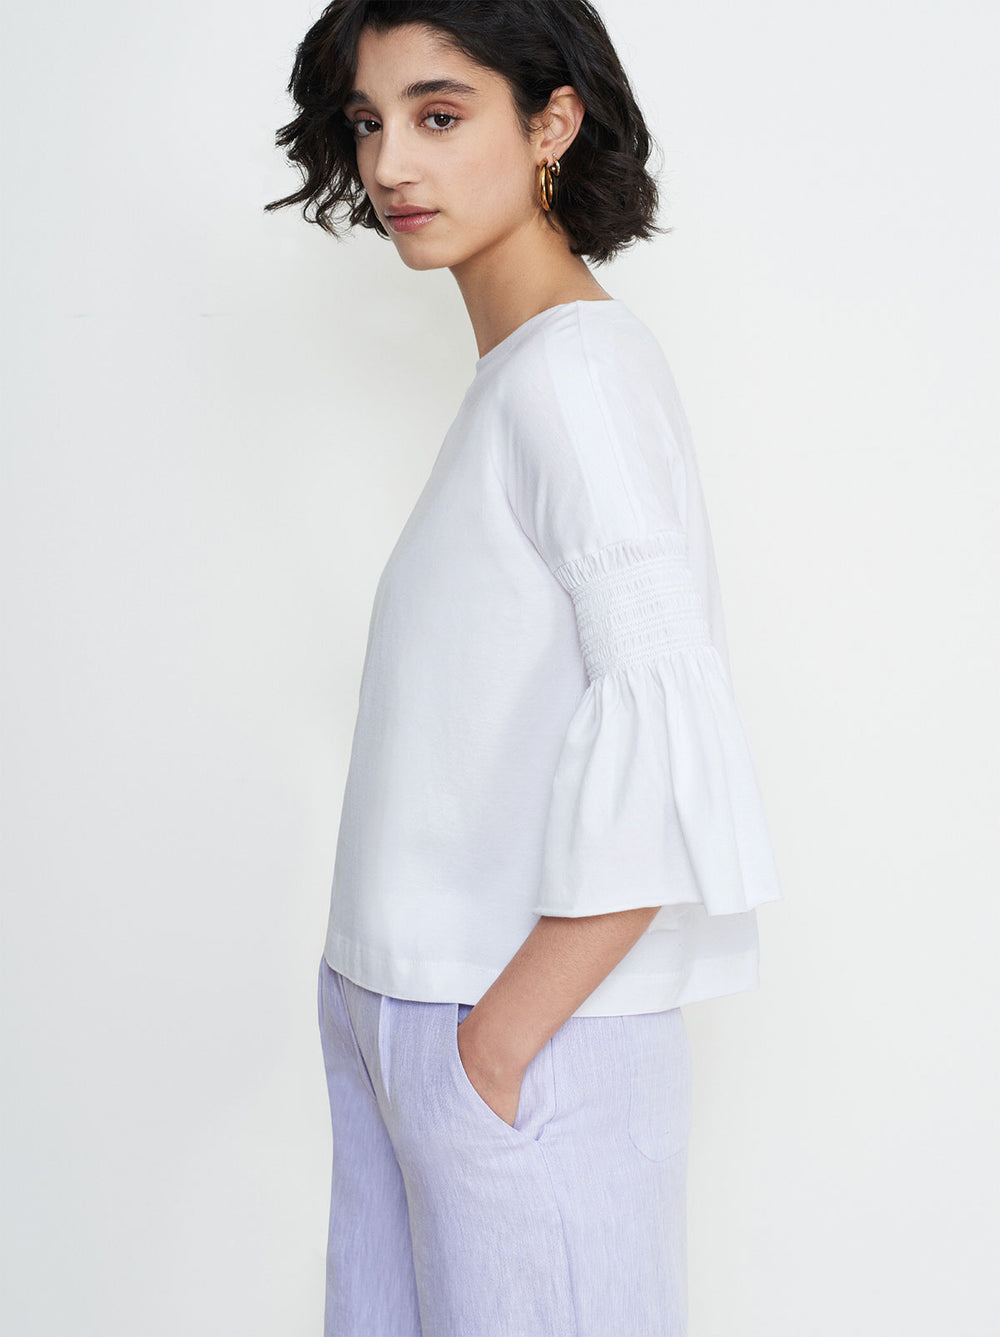 Esme White Smocked Sleeve T-Shirt by KITRI Studio